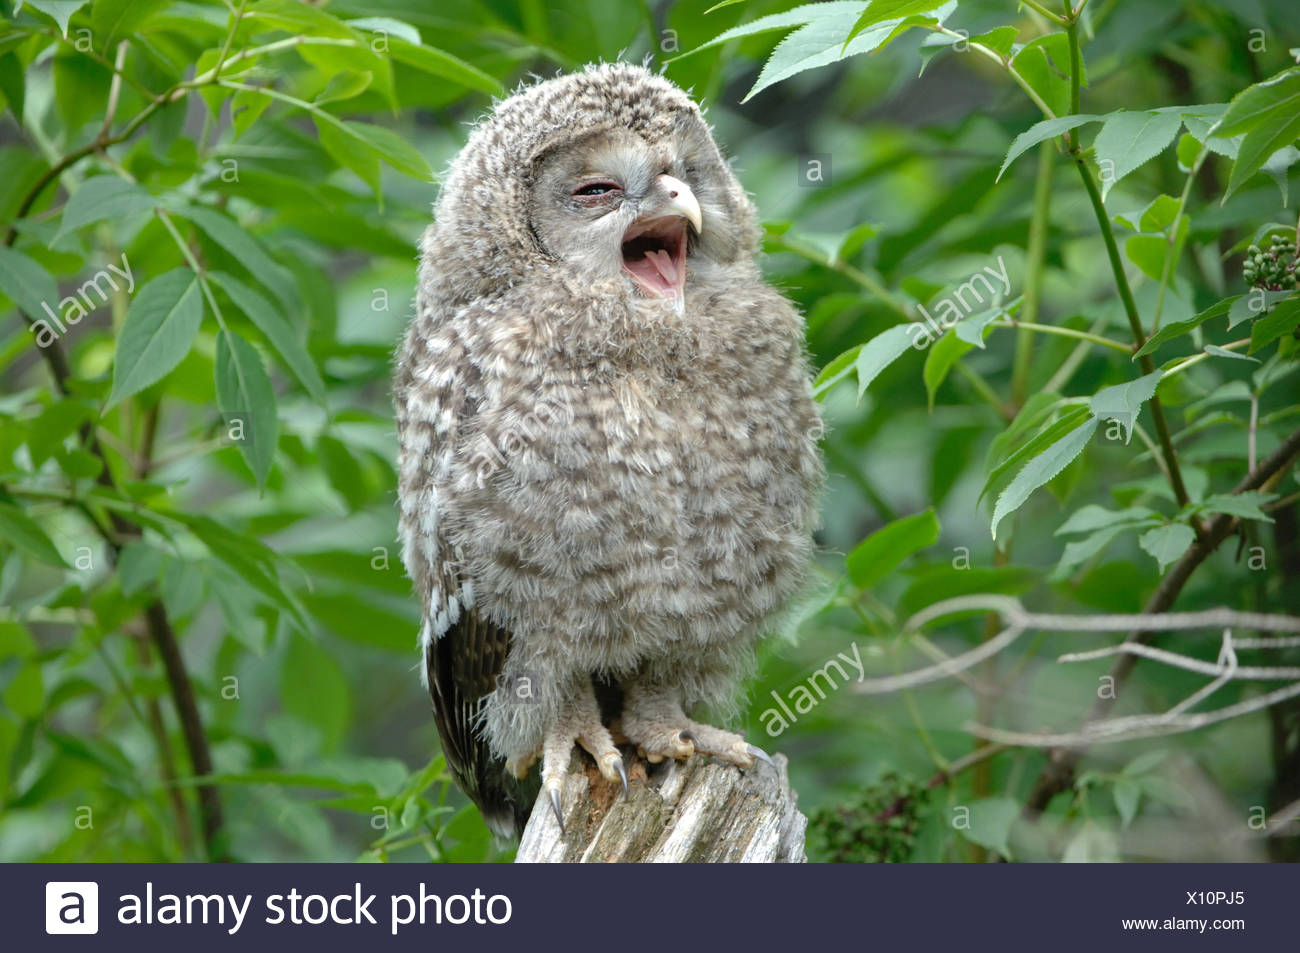 Owls, owl, Ural owl, night hunters, animal, animals, Germany, Europe, - Stock Image